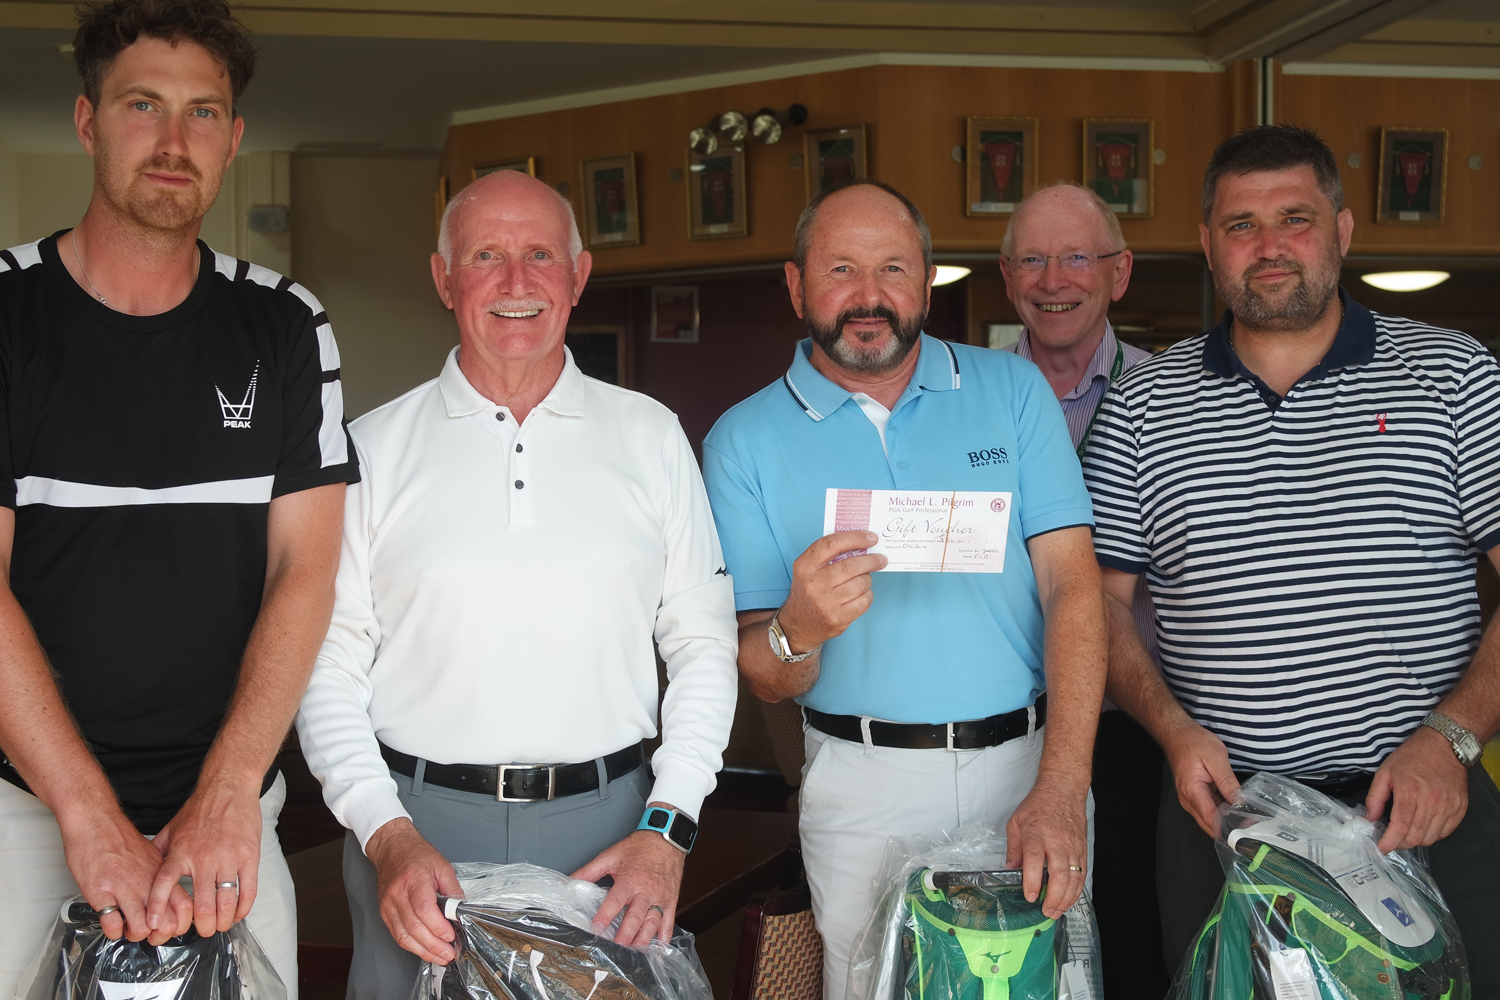 Golf Day For Hospice